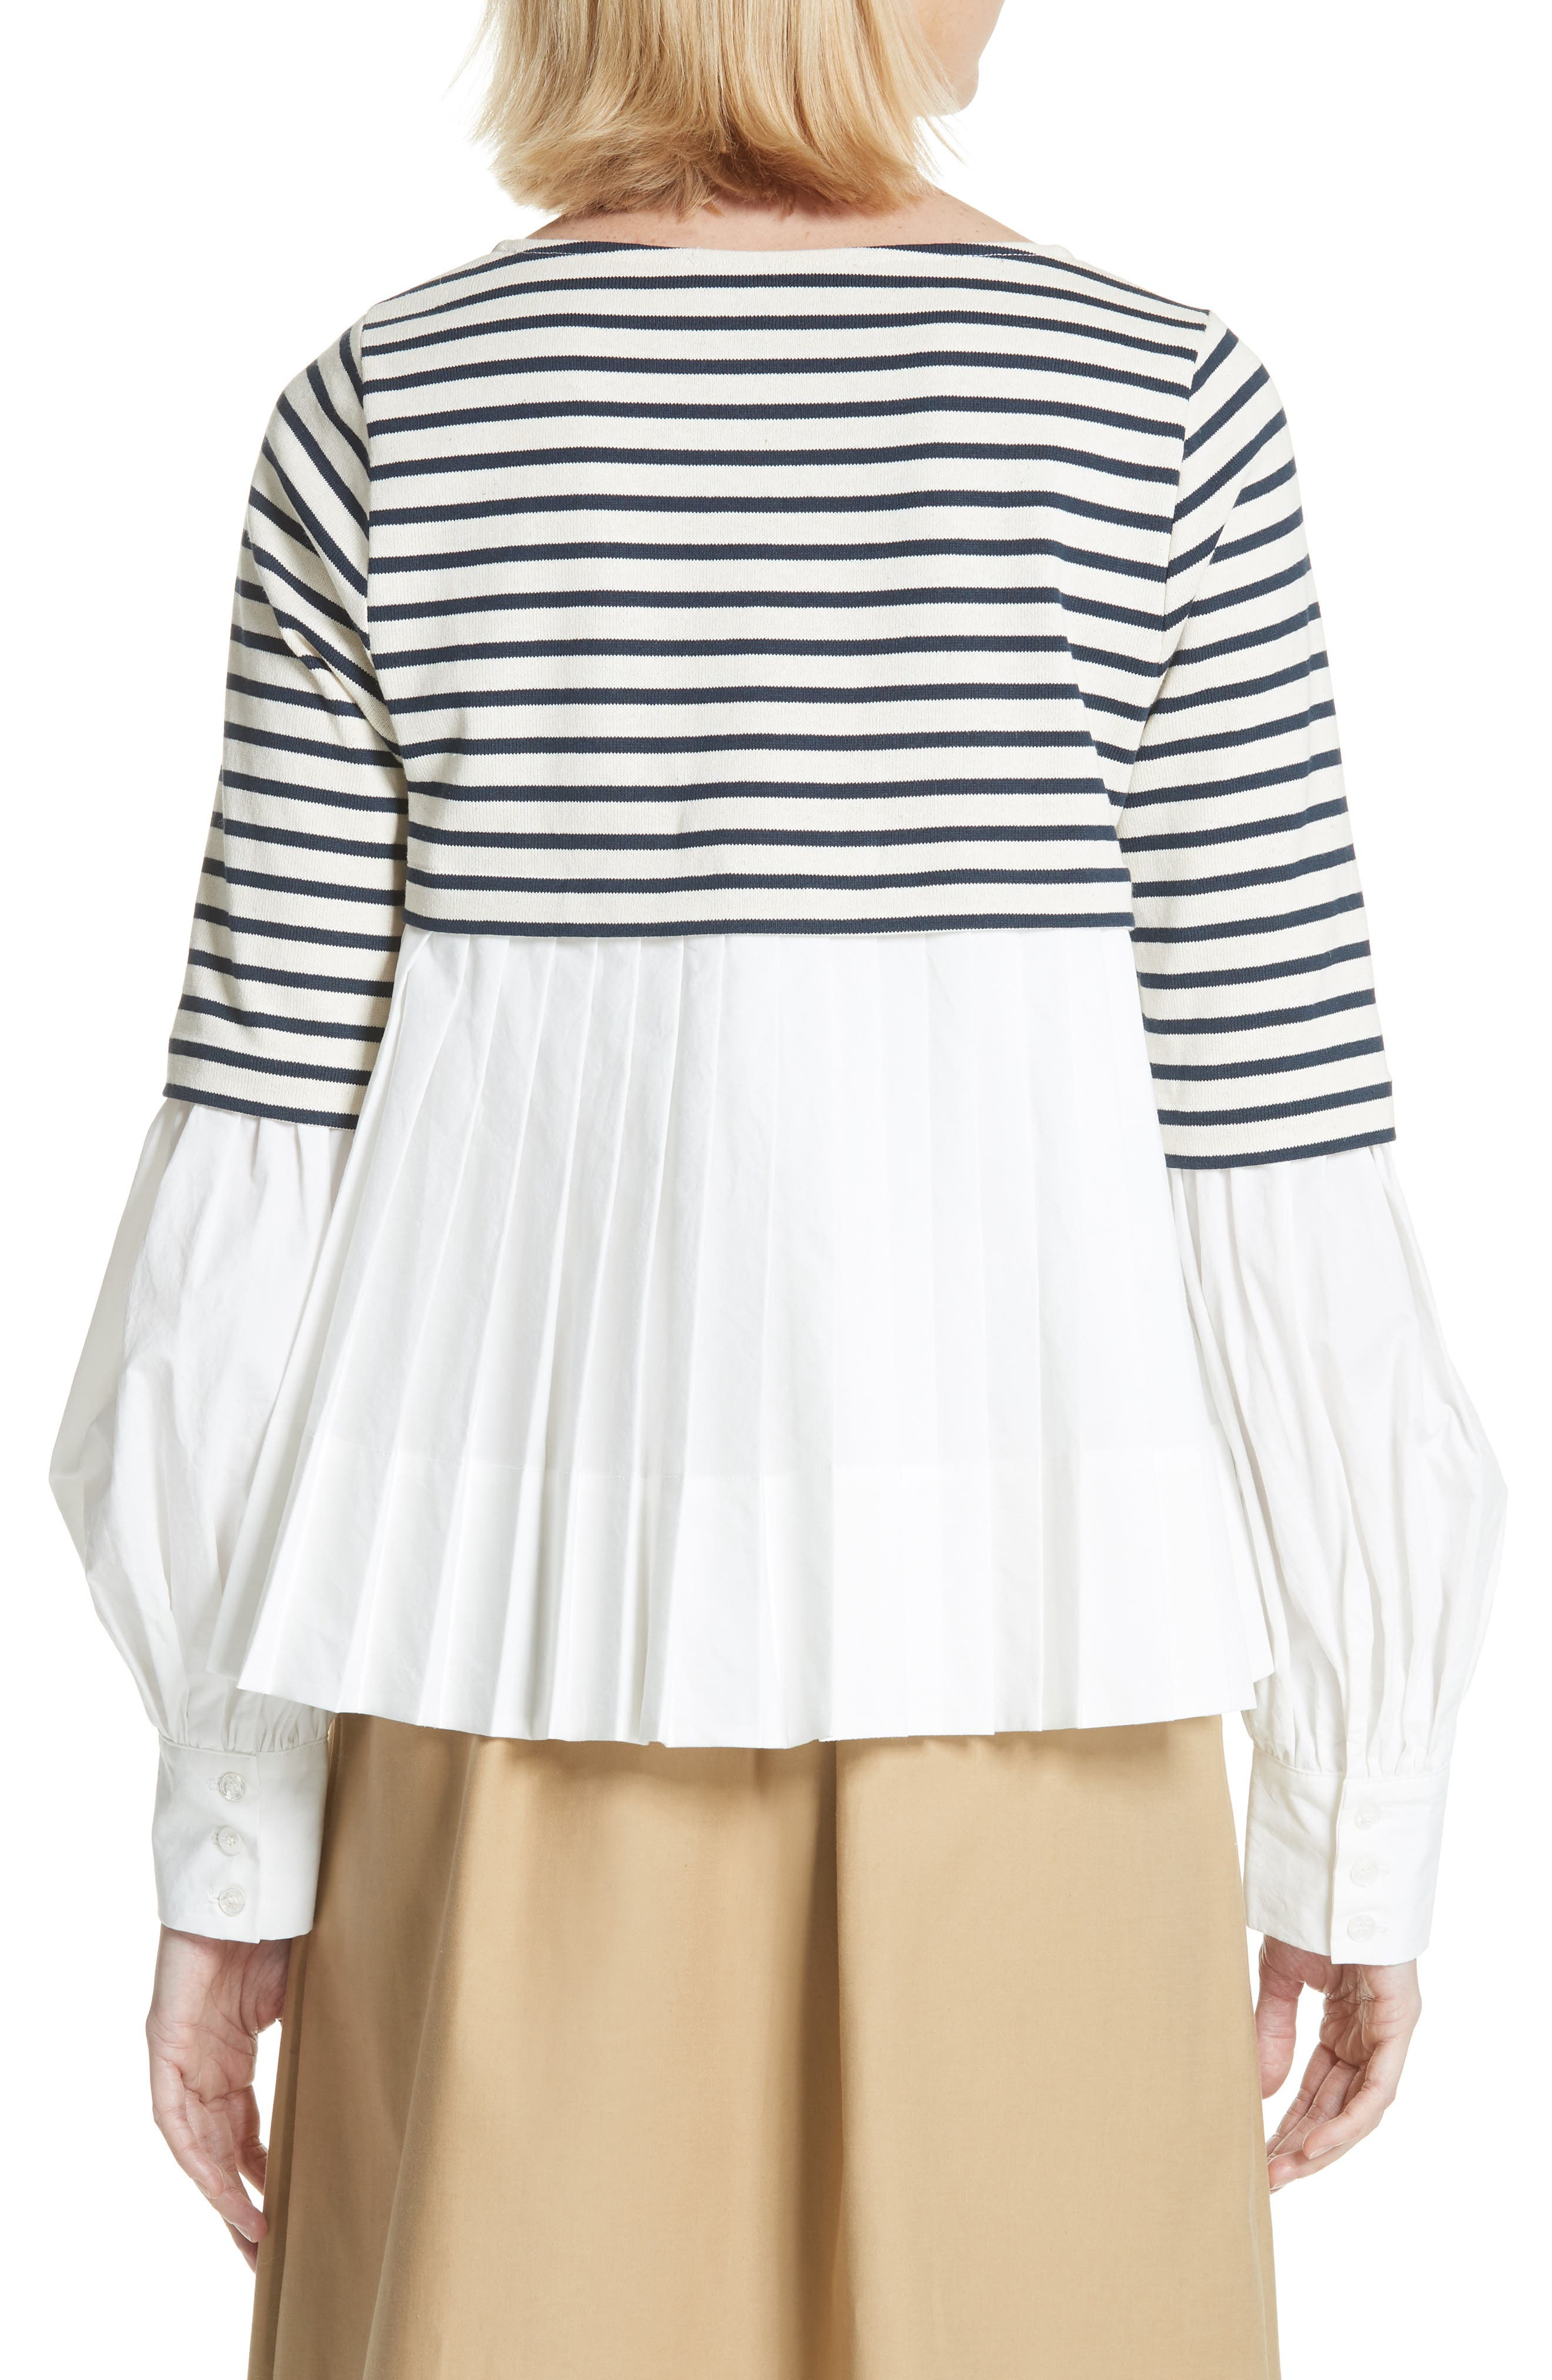 Levine Mixed Media Top,                             Alternate thumbnail 2, color,                             CREAM/ NAVY STRIPE